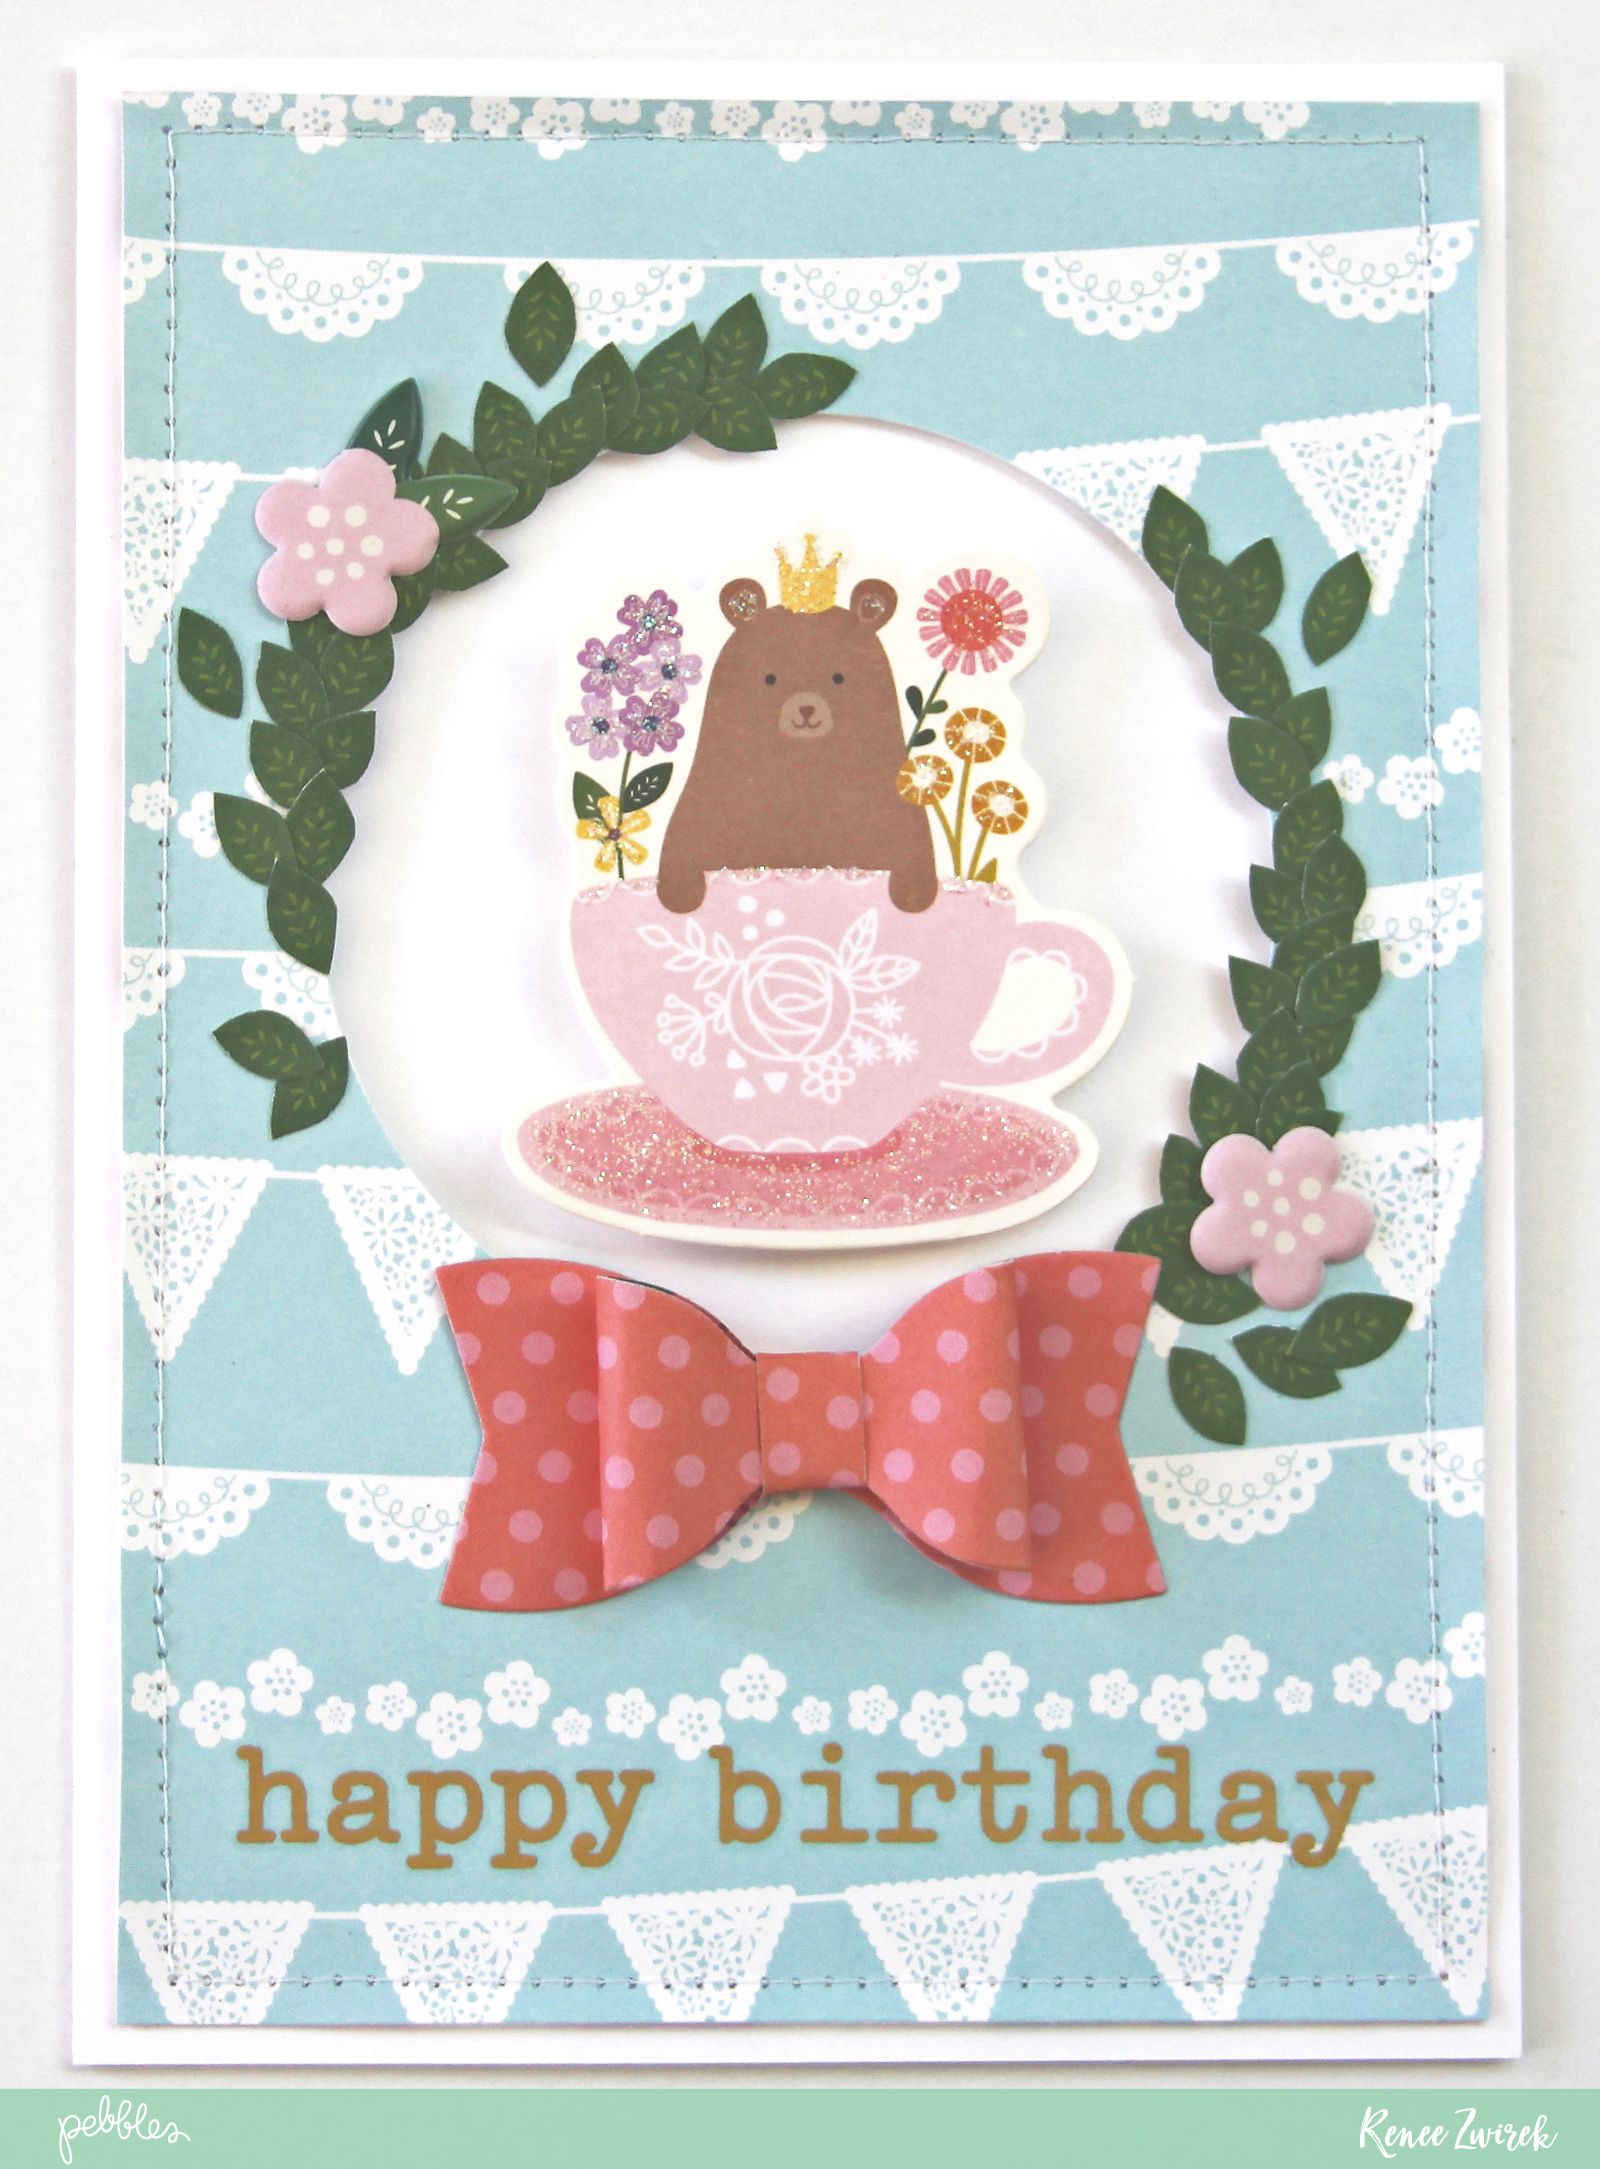 Send birthday wishes with a bit of whimsy with this lovely happy